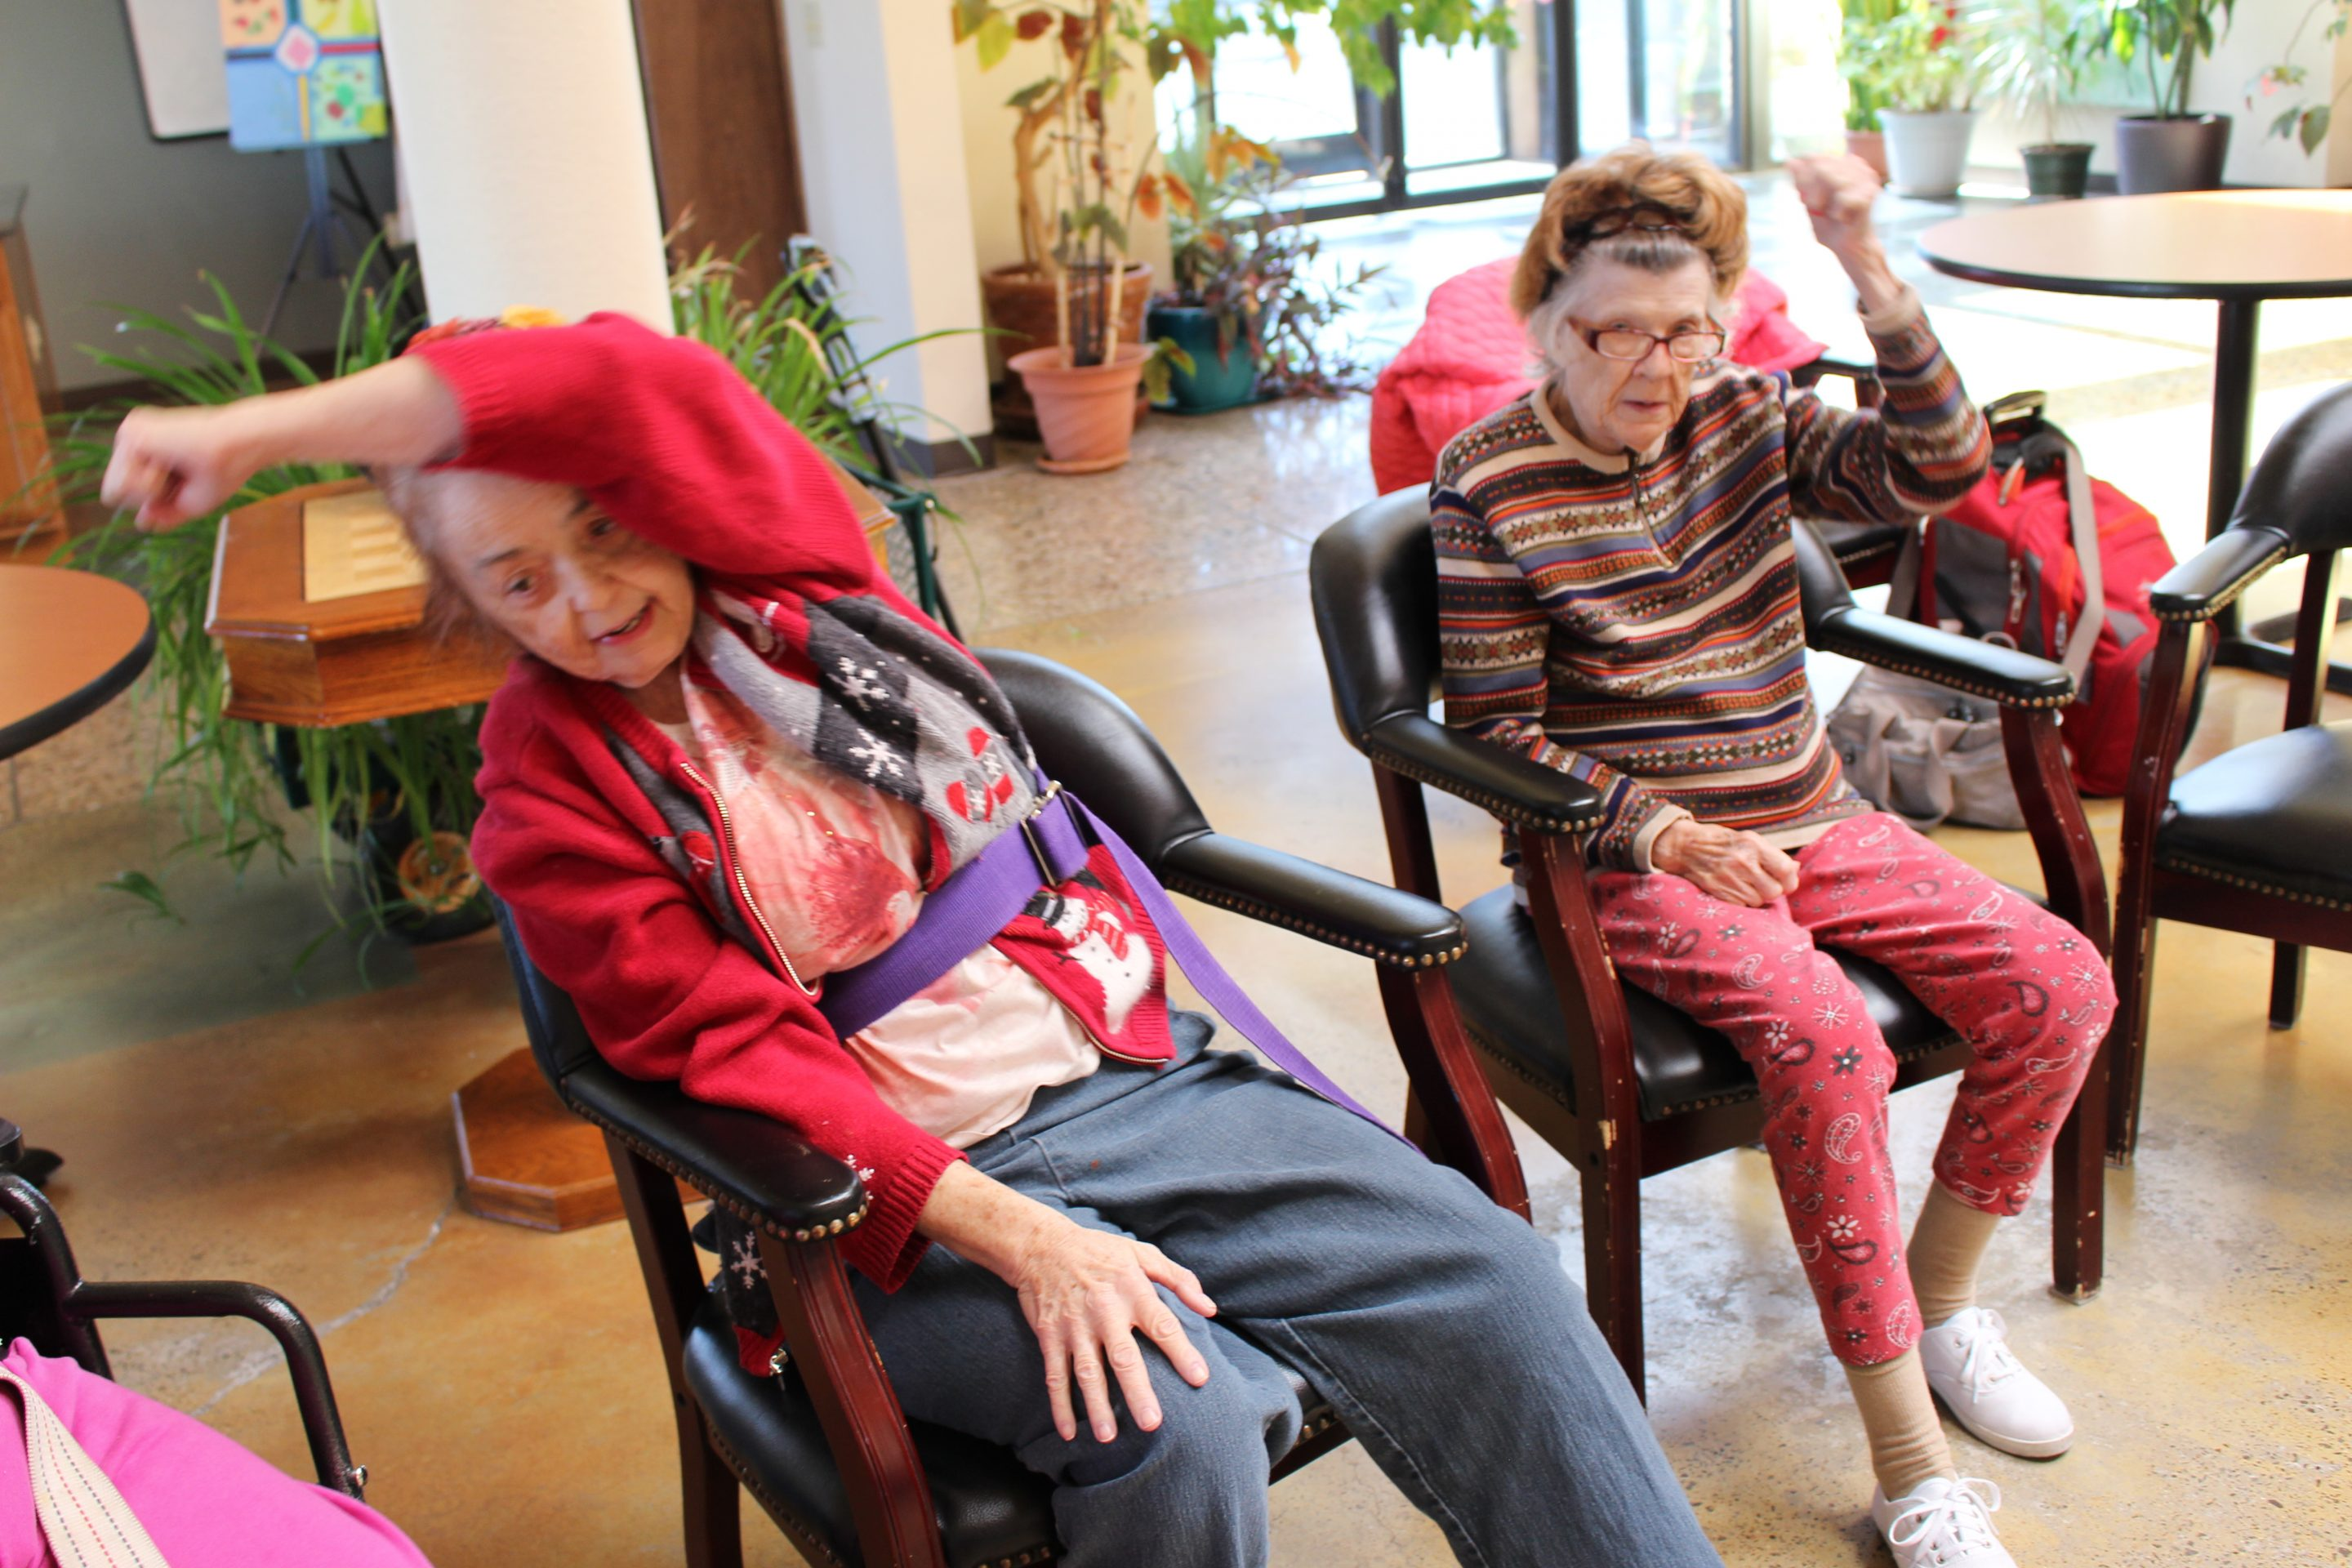 Two seniors at Compadres Senior Center doing chair exercises.